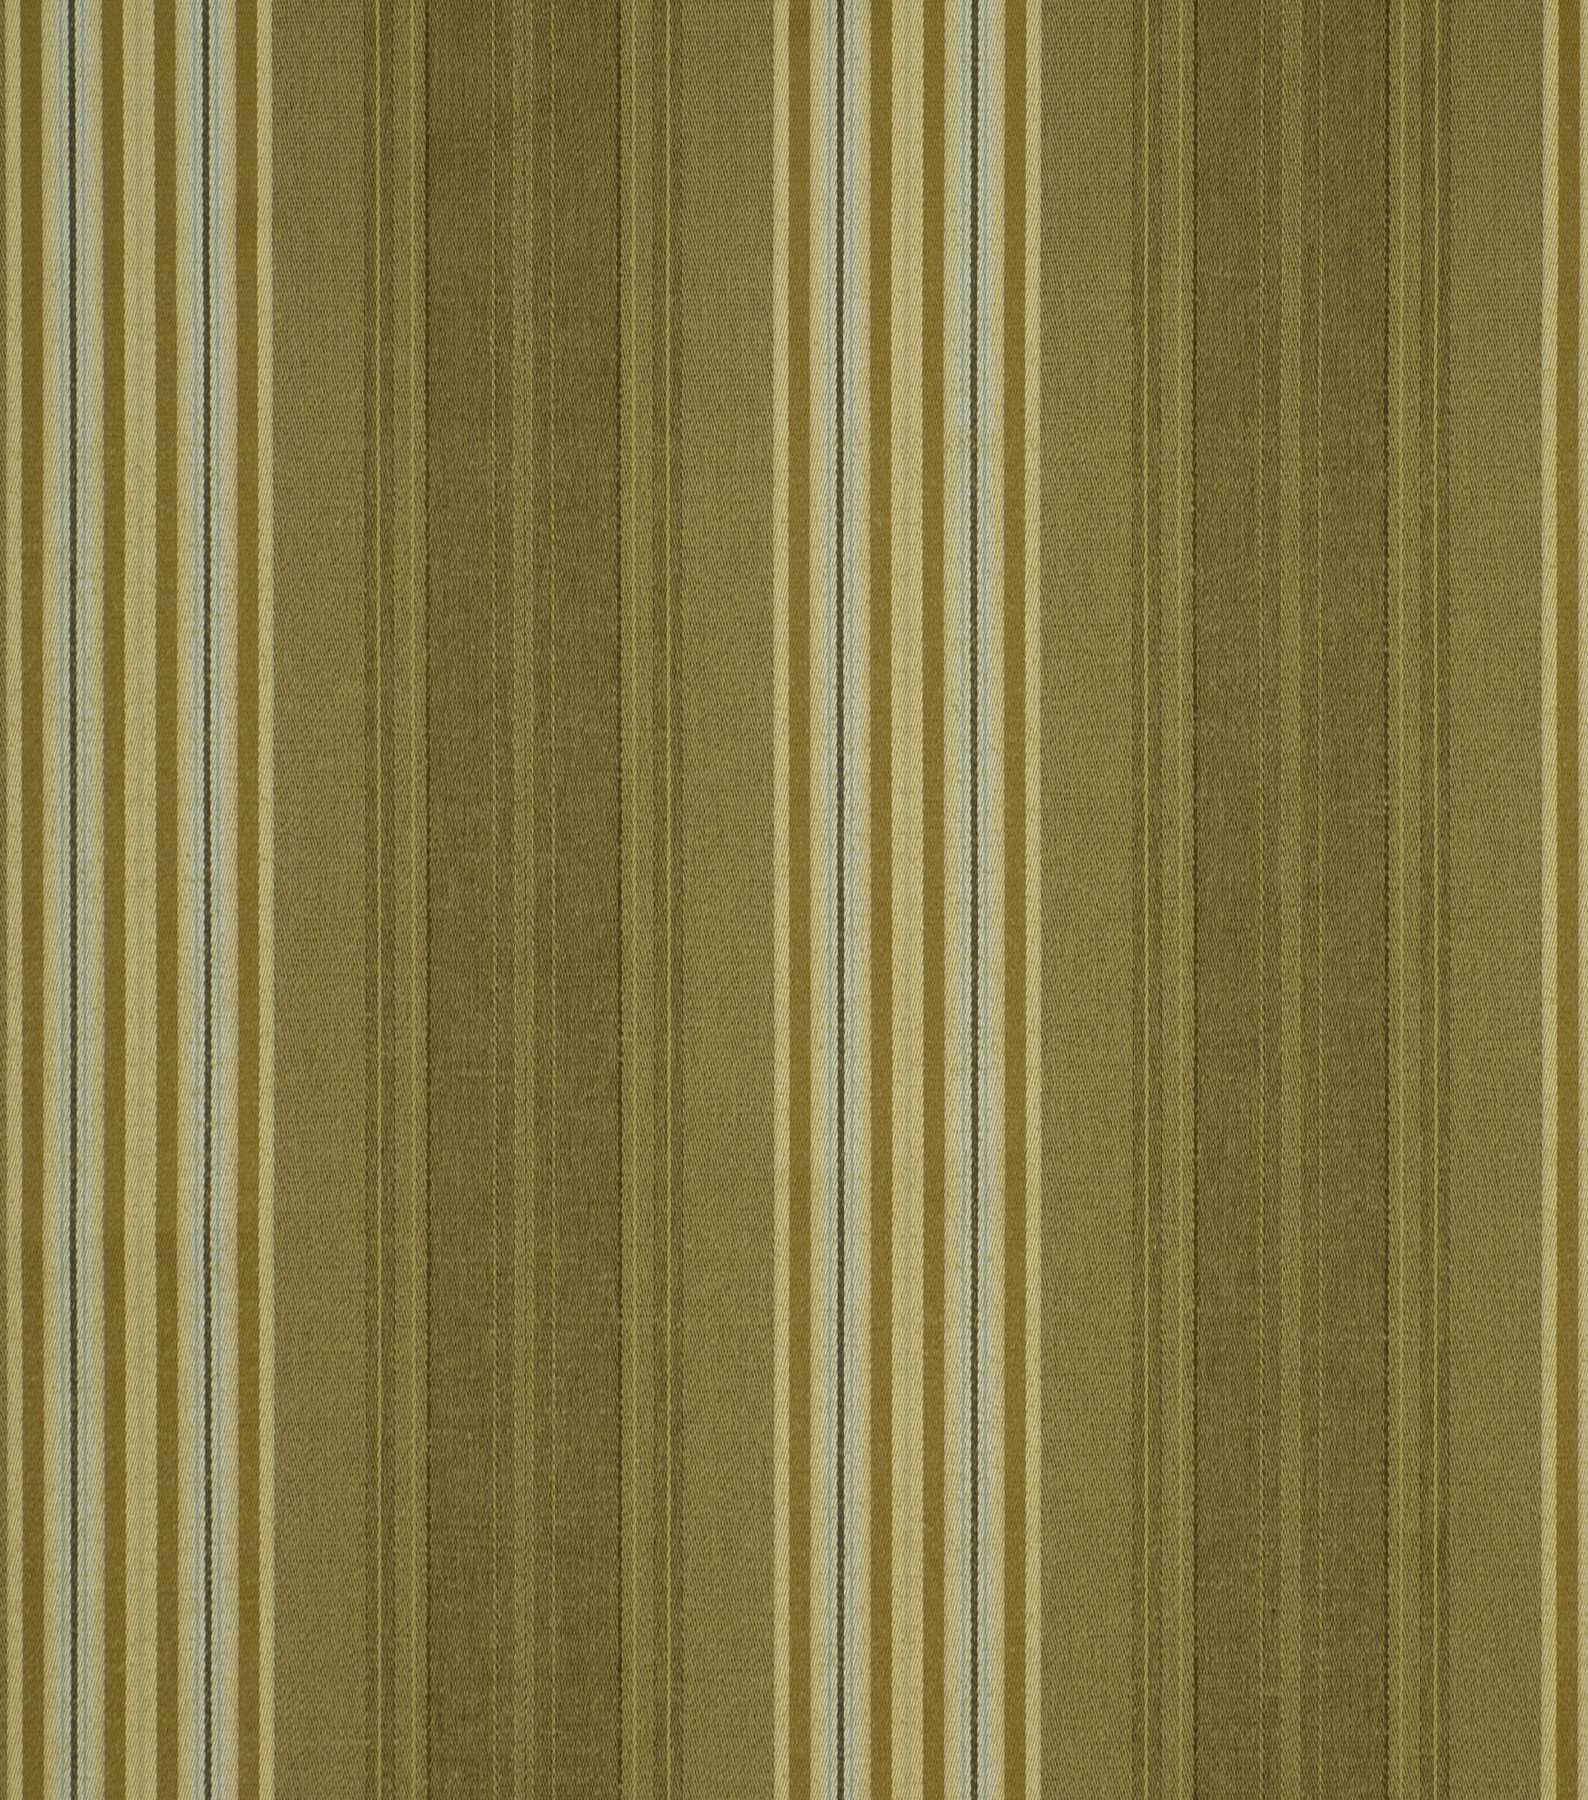 Home Decor 8\u0022x8\u0022 Fabric Swatch-Robert Allen Holmdel Stripe Driftwood